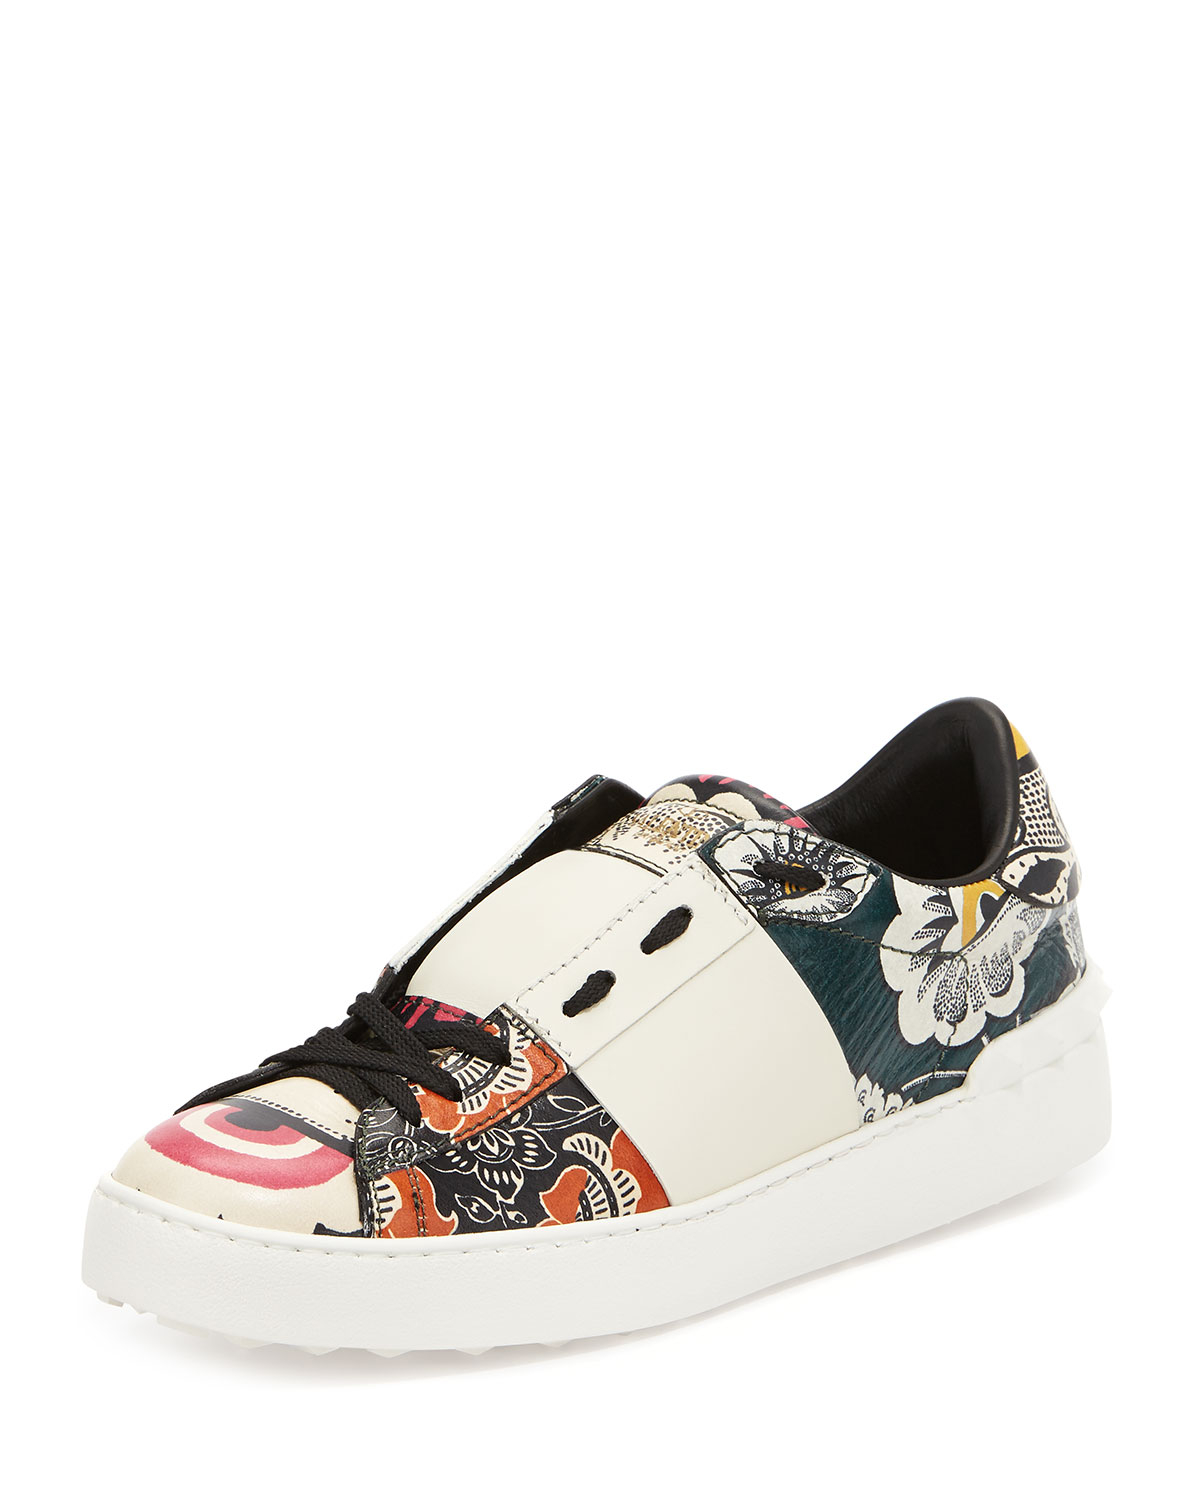 low cost in China cheap price Valentino Floral Rockstud Sneakers clearance under $60 NceZgf9zg